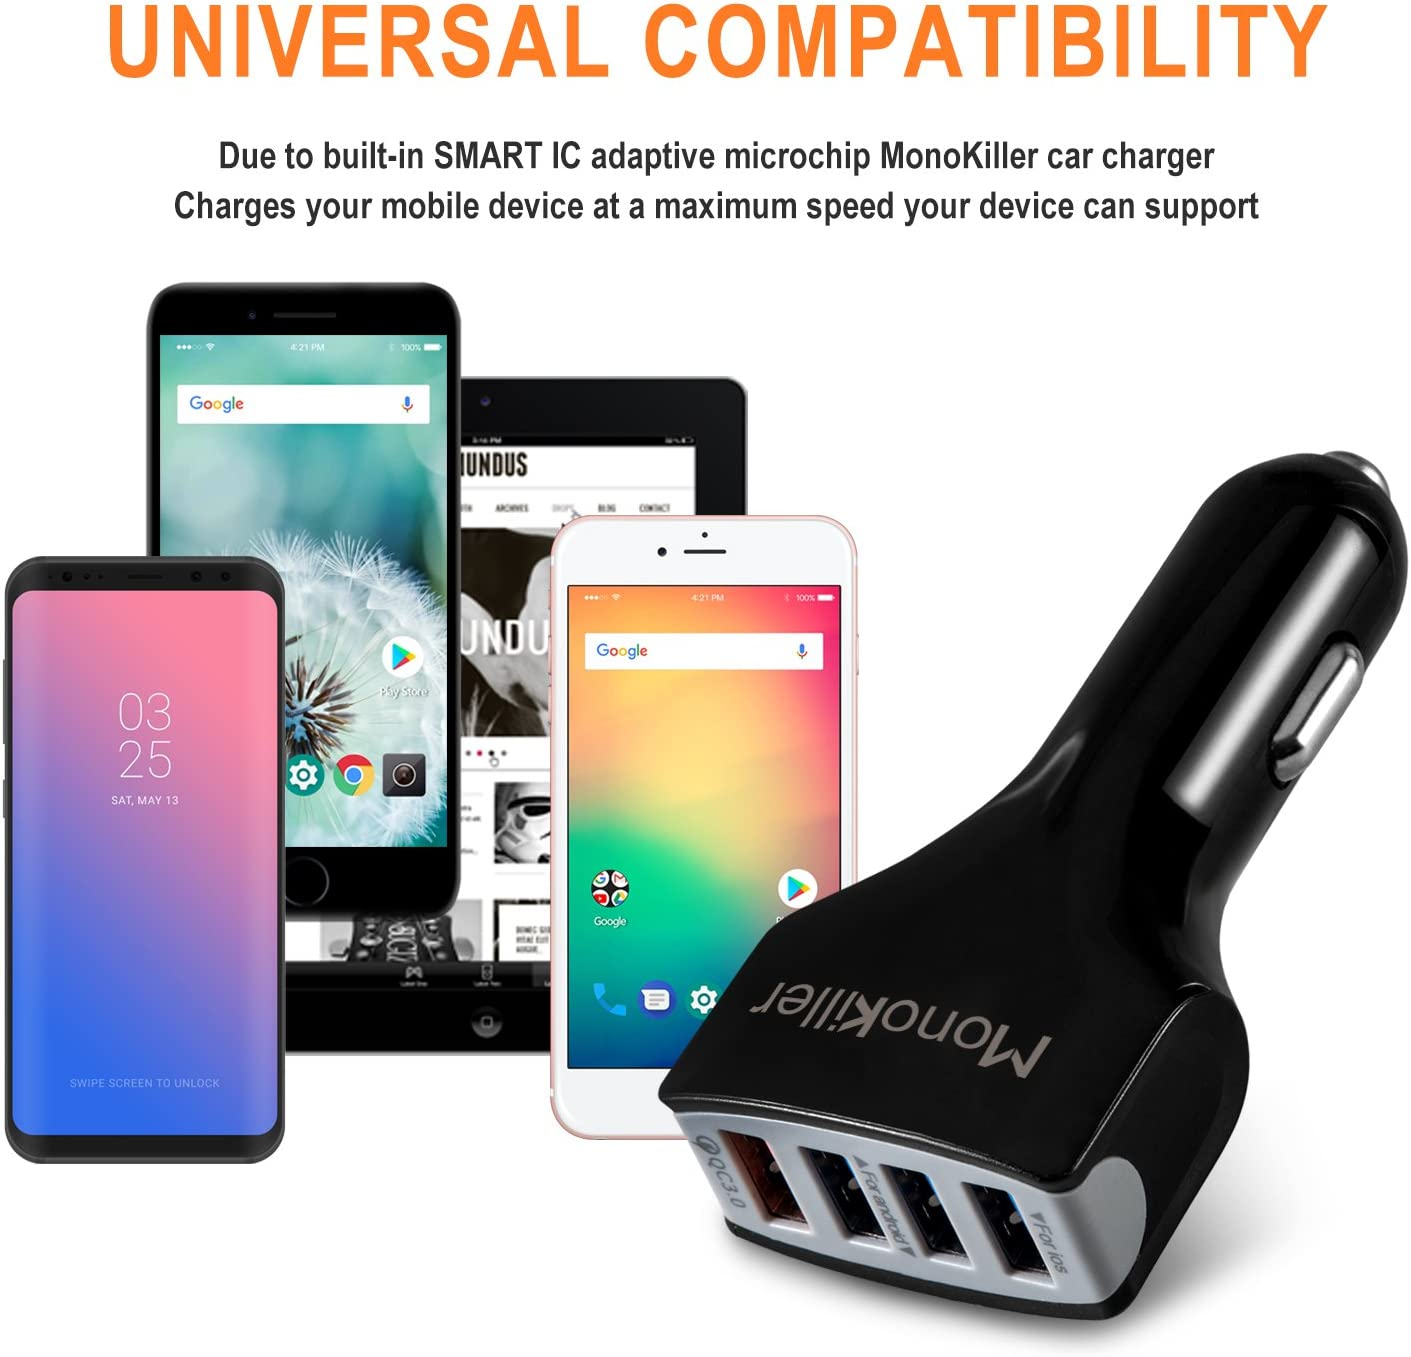 Monokiller Quick Charge 3.0 Car Charger USB iPhone Car Adapter Cell Phone Car Charger 4A Smart IC 3 USB Car Charger Adapter for any iOS or Android Devices: iPhone X//6//6S//8// 8Plus//7//7S//7Plus//5//5S//SE//4 Samsung Galaxy S8//S7// S6//S5 Edge HTC LG and More